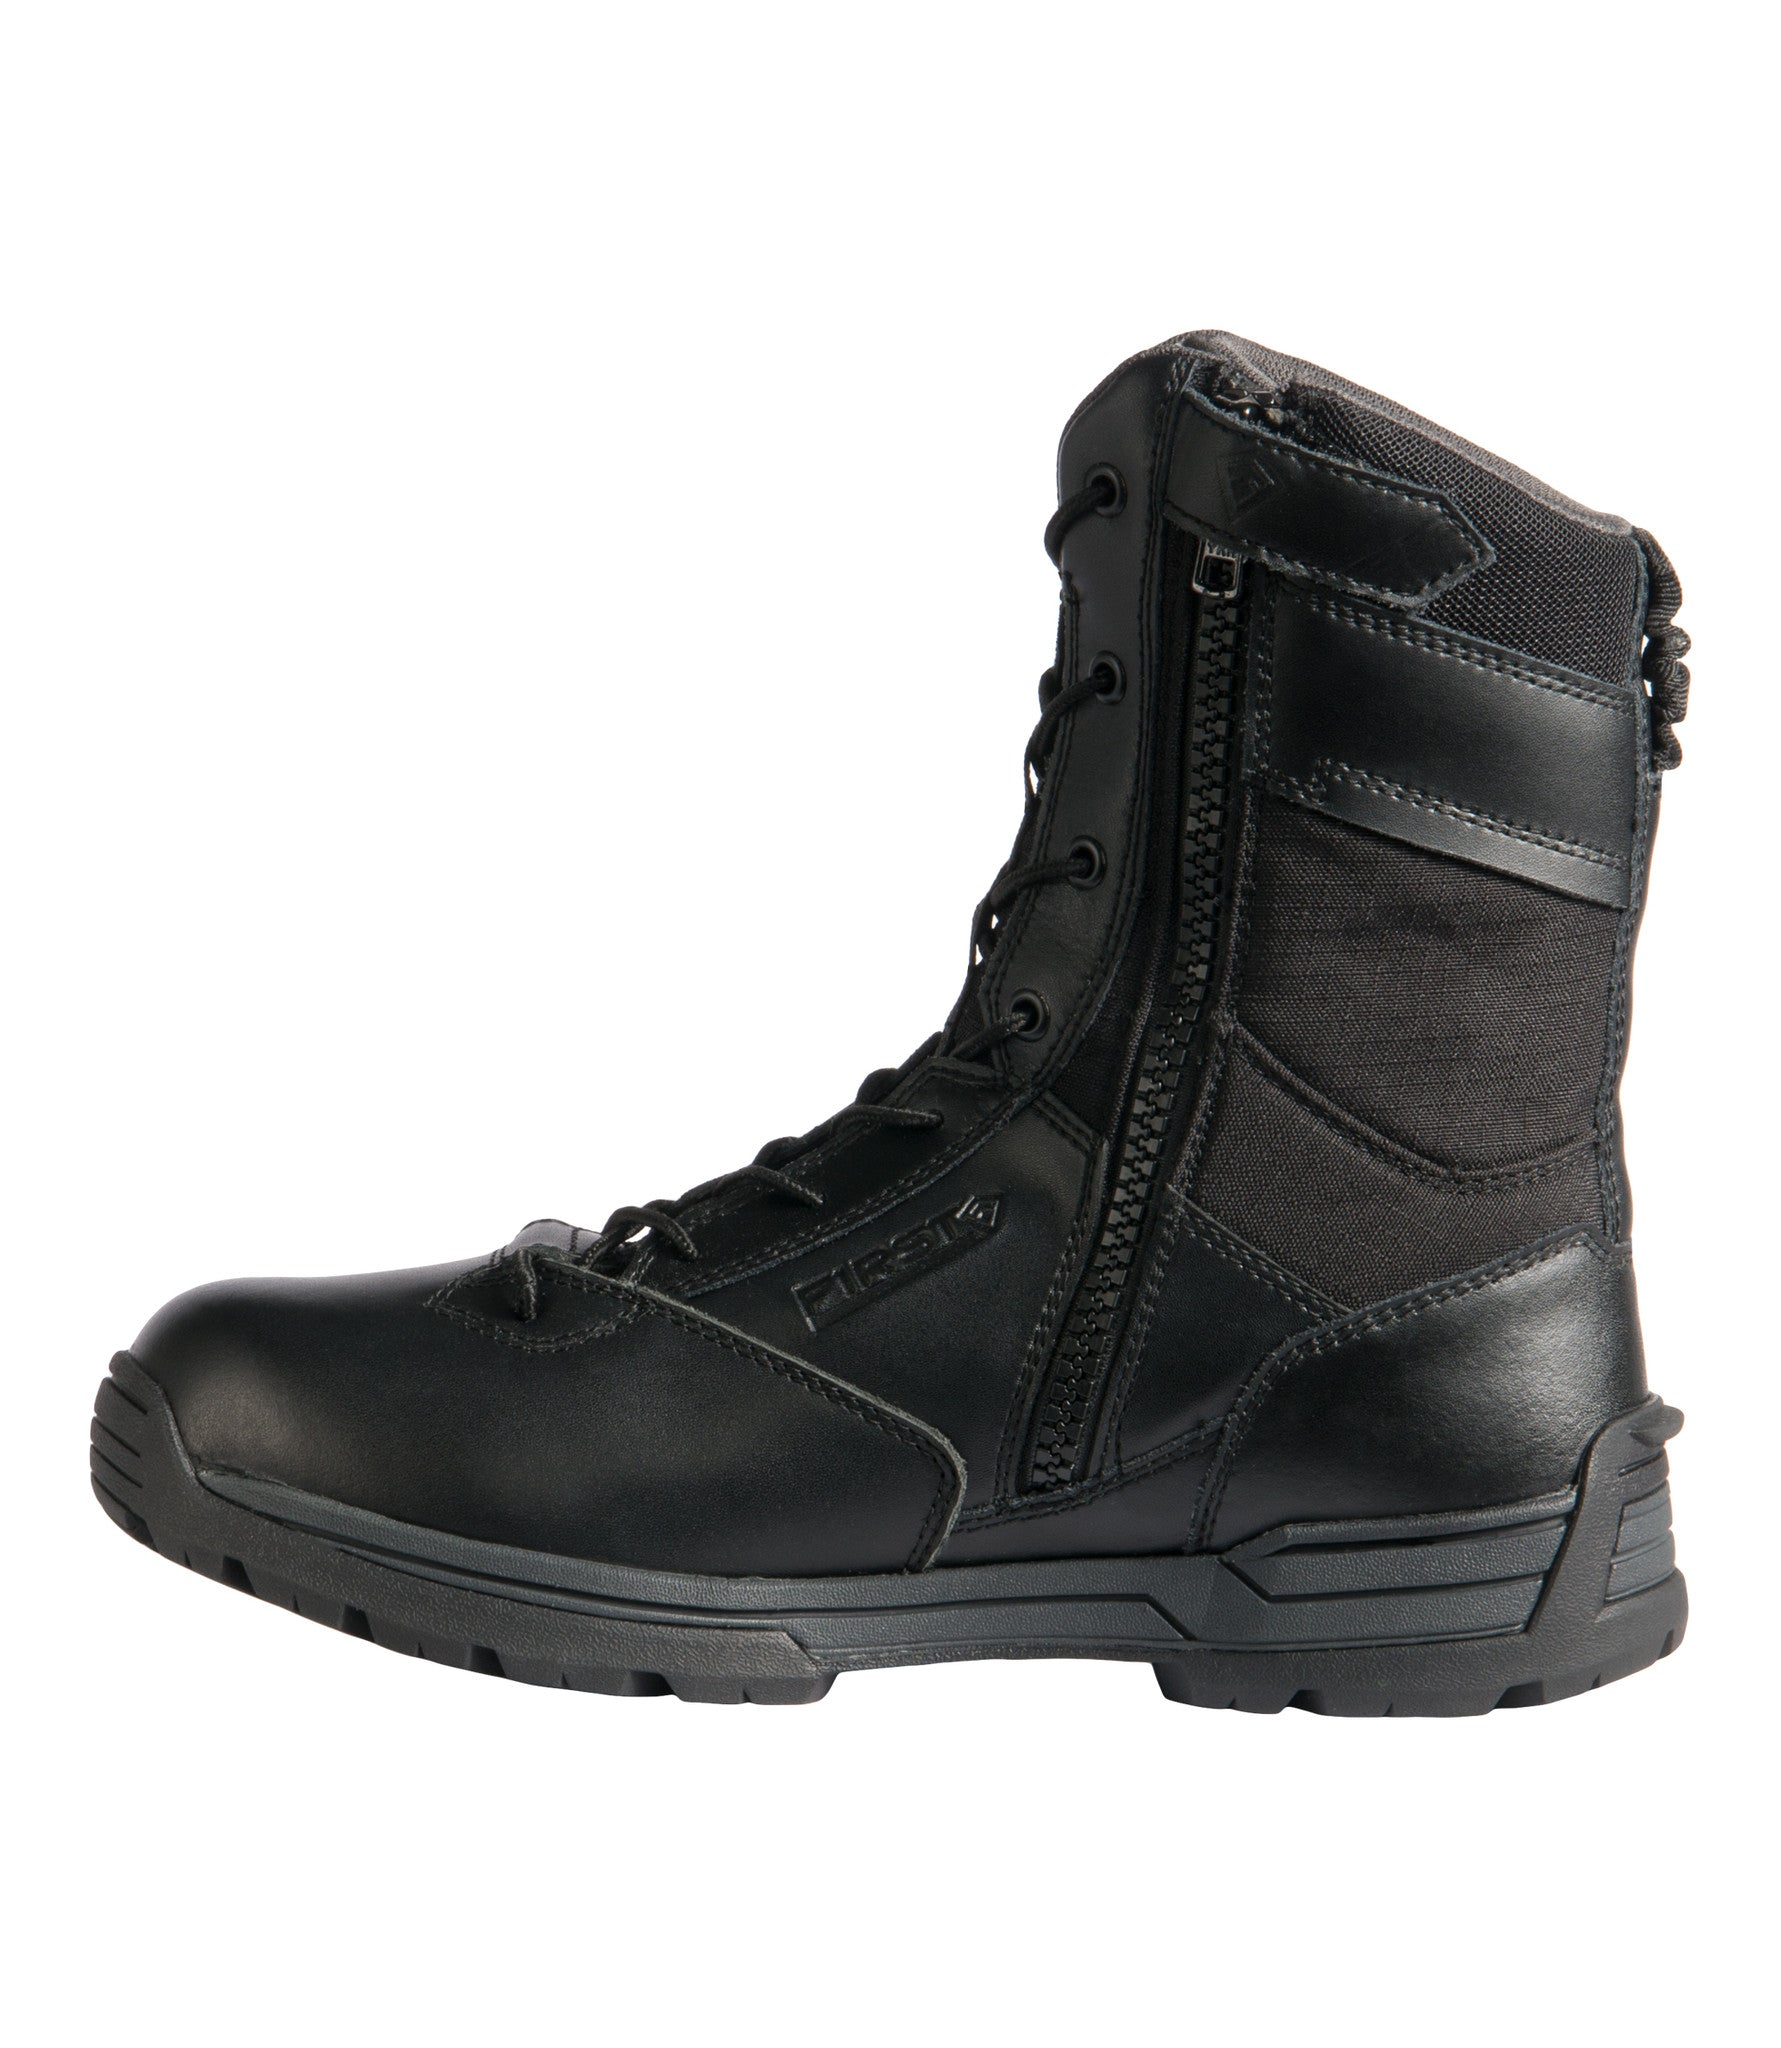 "3de568a7751 Men s 8"" Waterproof Side Zip Duty Boot  129.99"